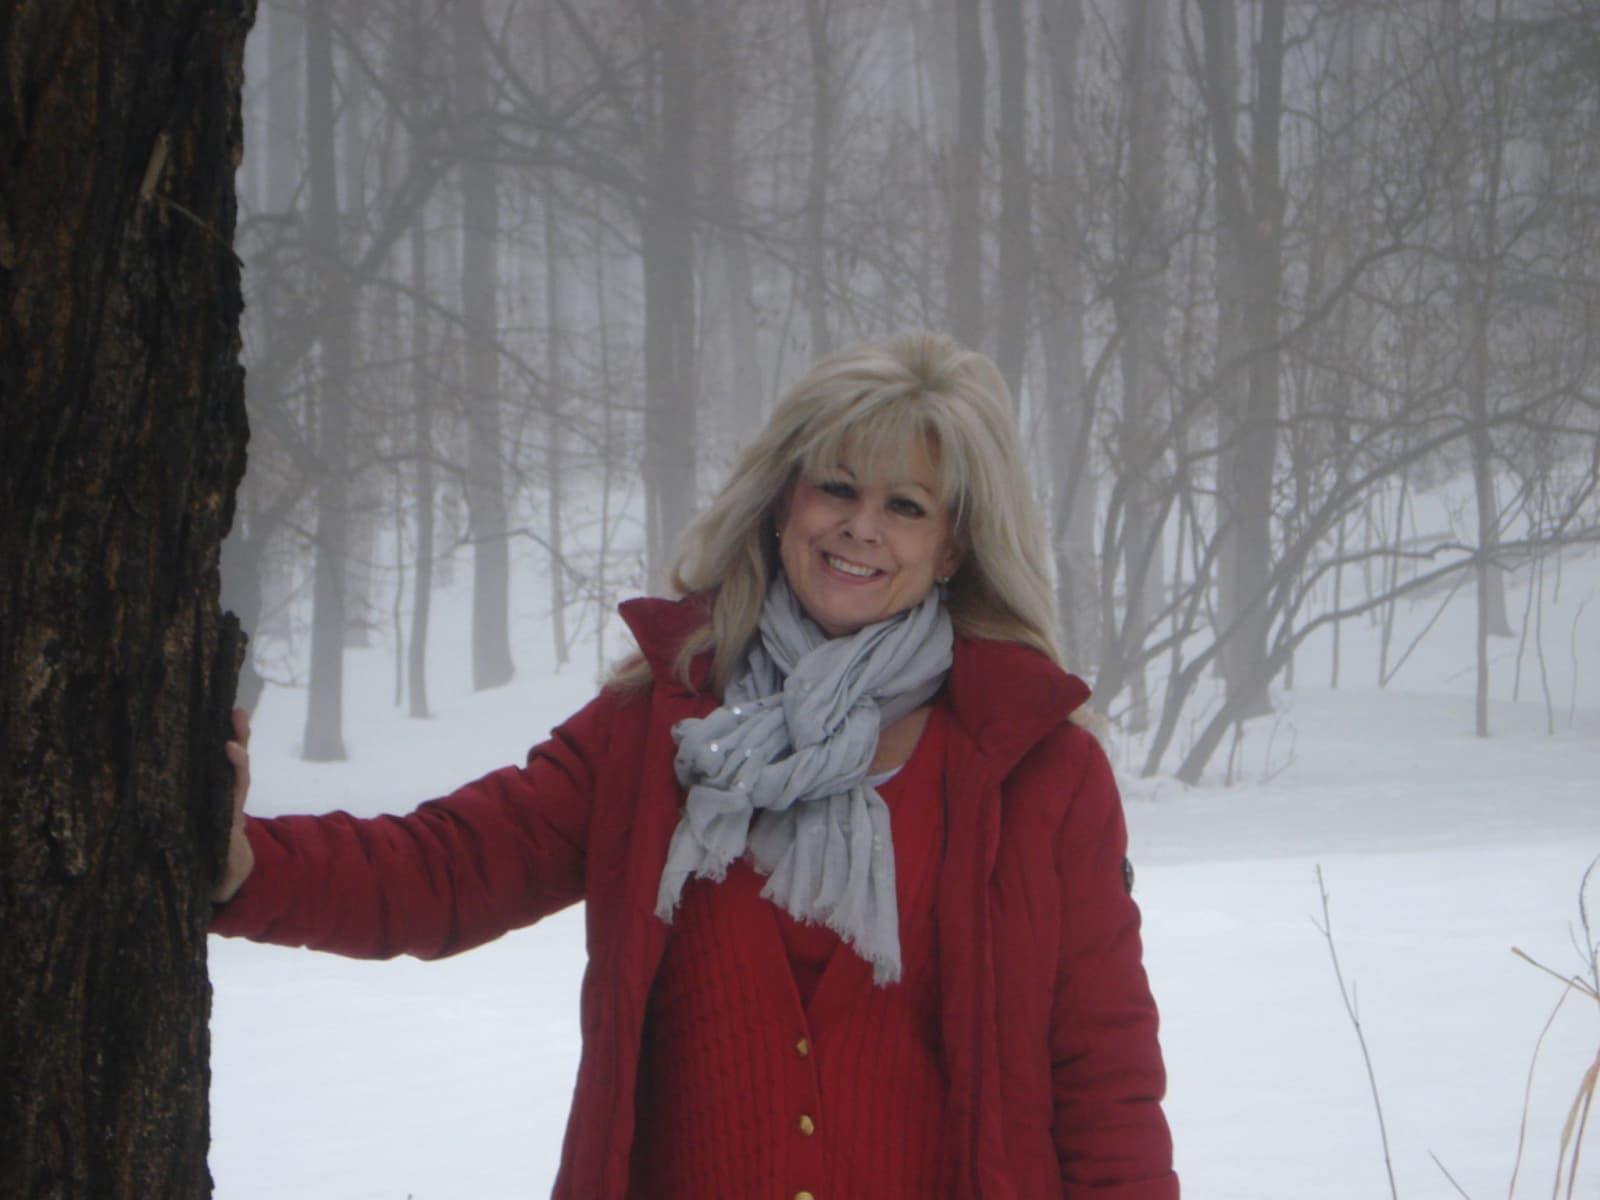 Cathy from Bromont, Quebec, Canada